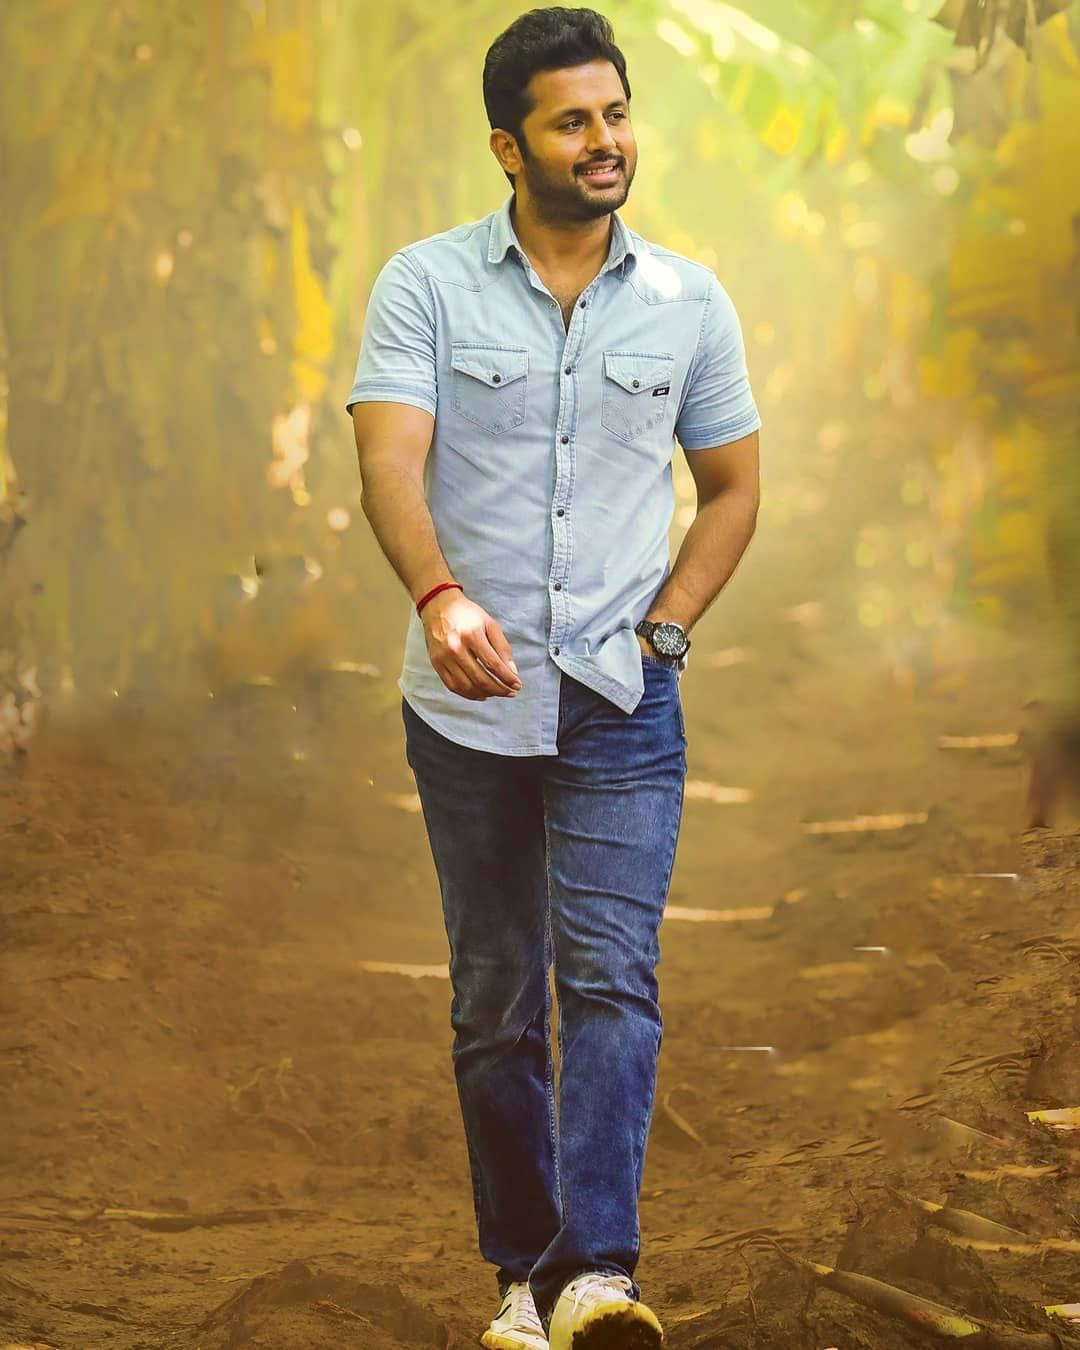 Pin By Umme Manha On Nithin In 2020 Actor Photo Actors Images Actor Picture